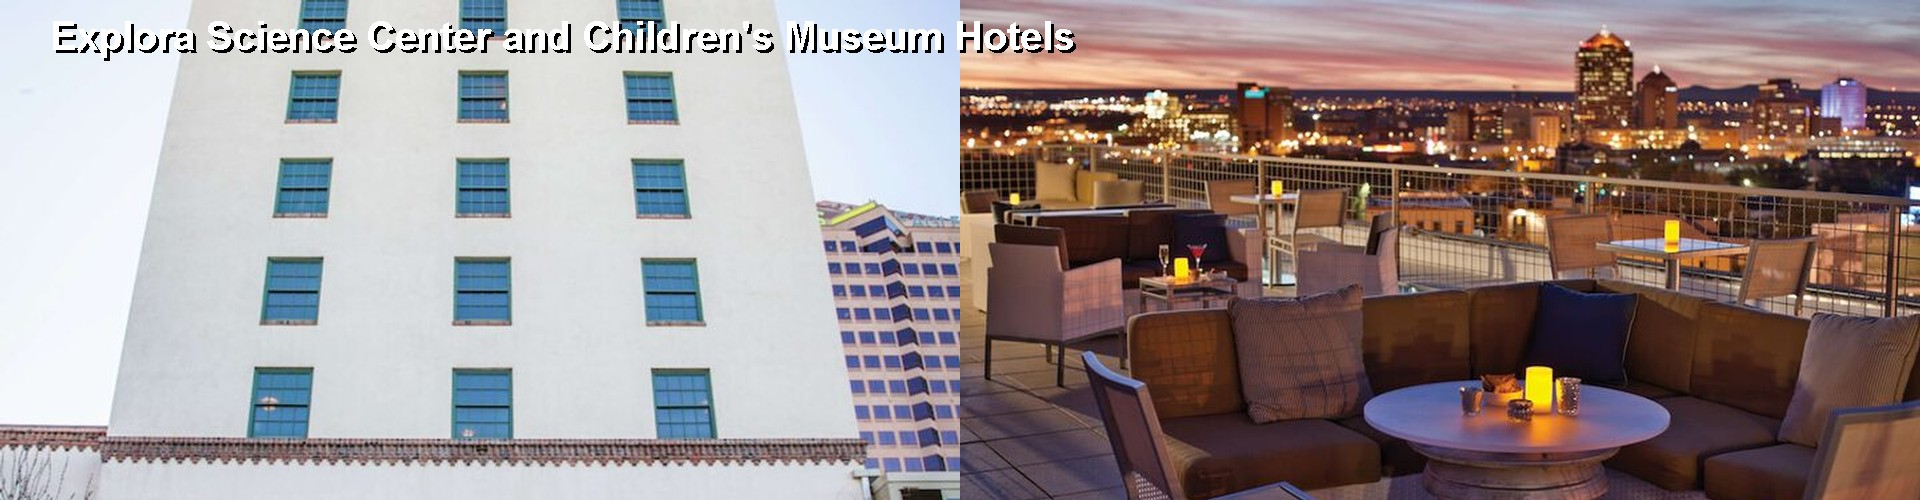 5 Best Hotels near Explora Science Center and Children's Museum